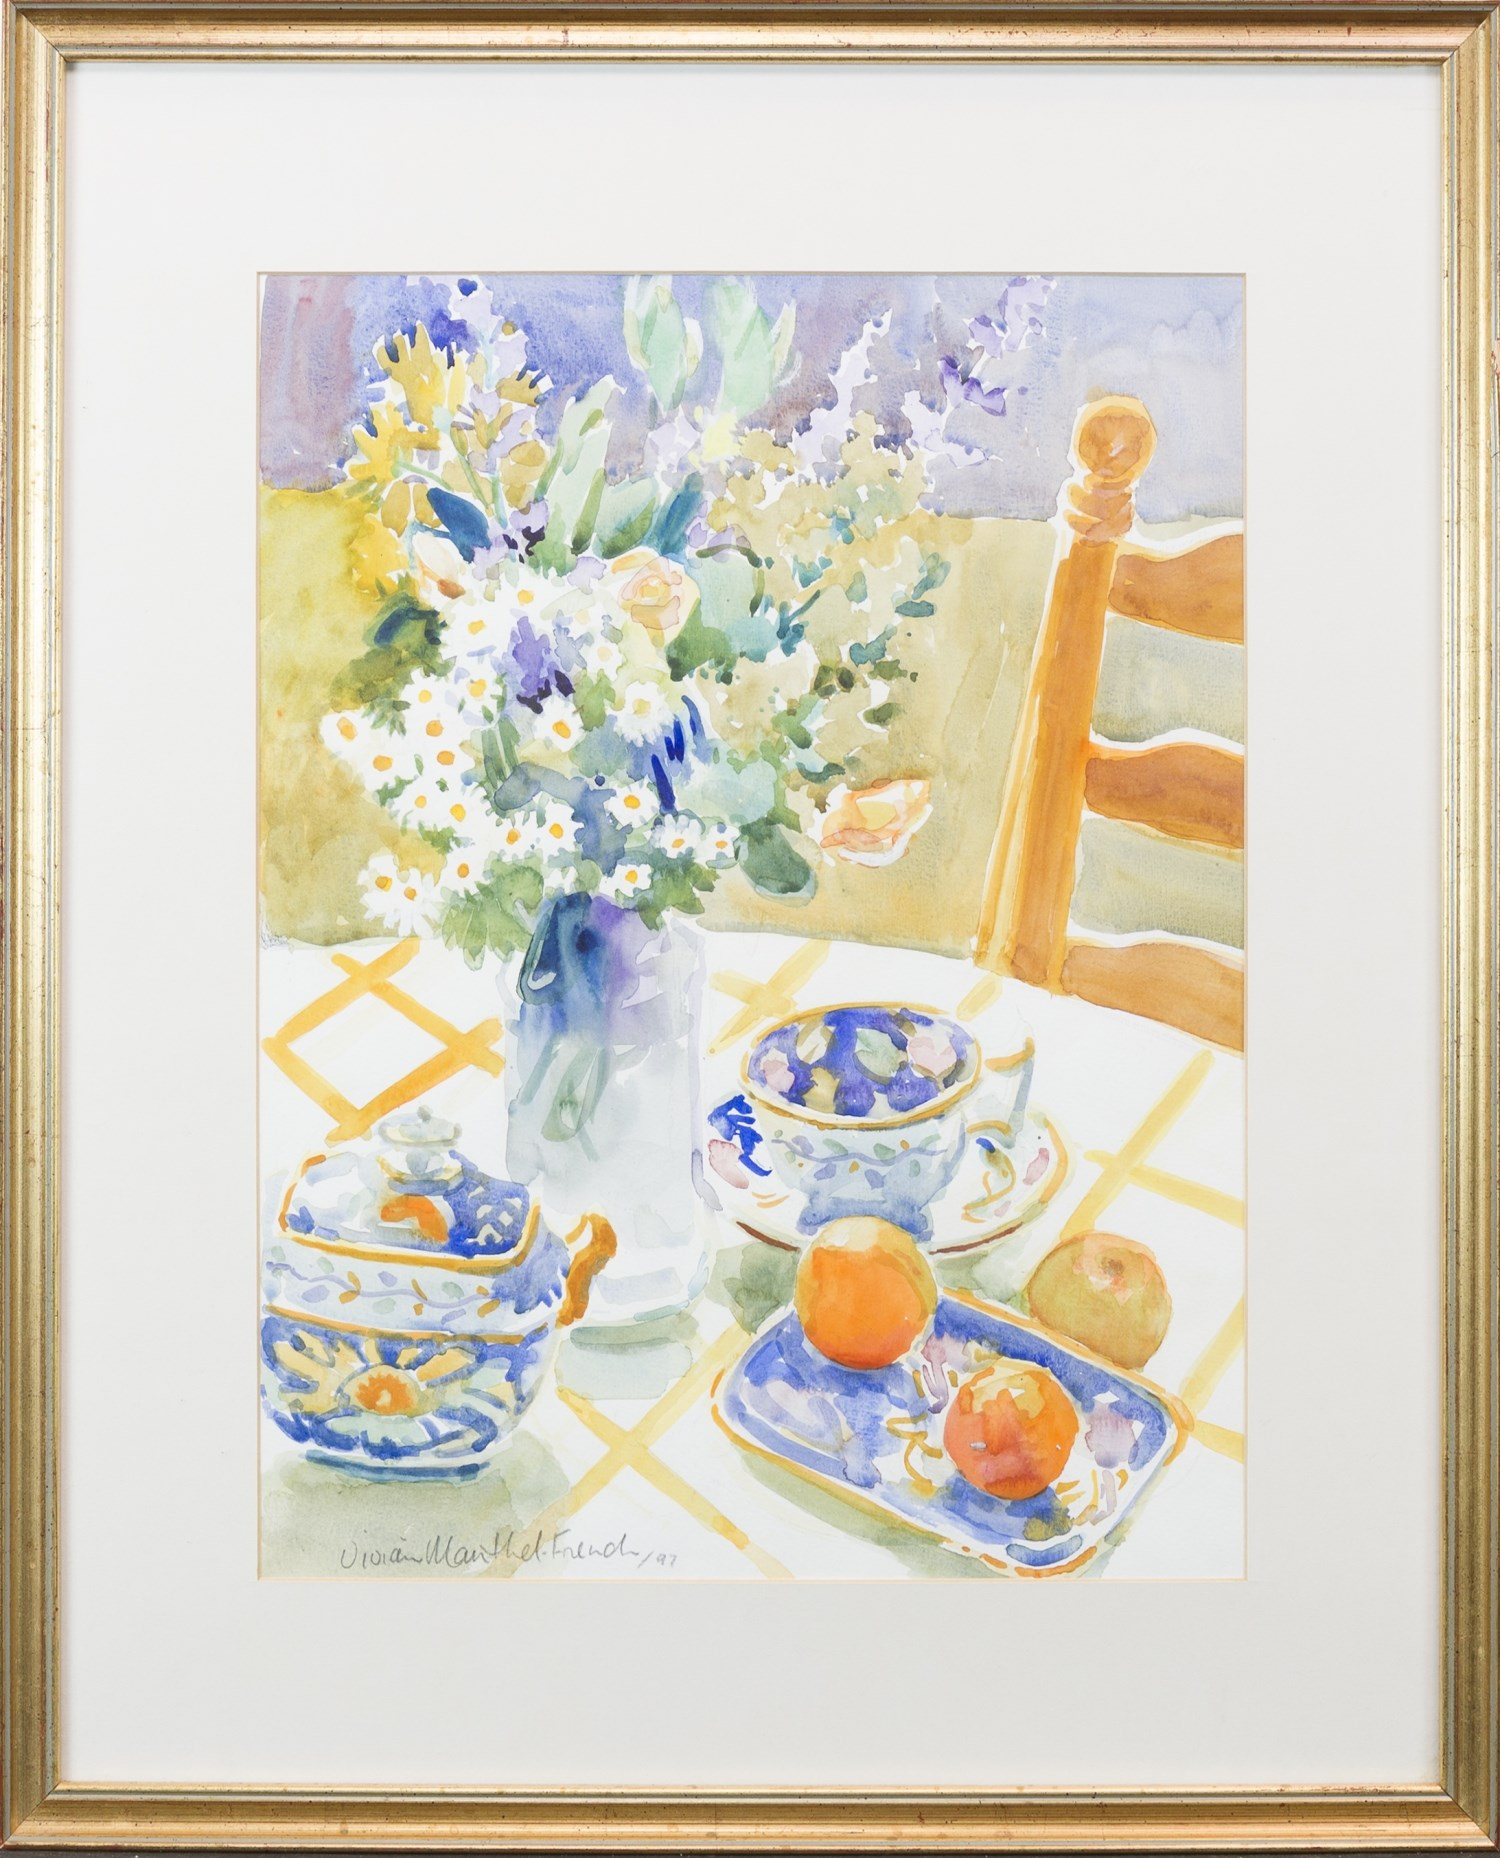 Lot 43 - STILL LIFE OF FLOWERS, FRUIT AND CROCKERY, BY VIVIAN MANTHEL-FRENCH